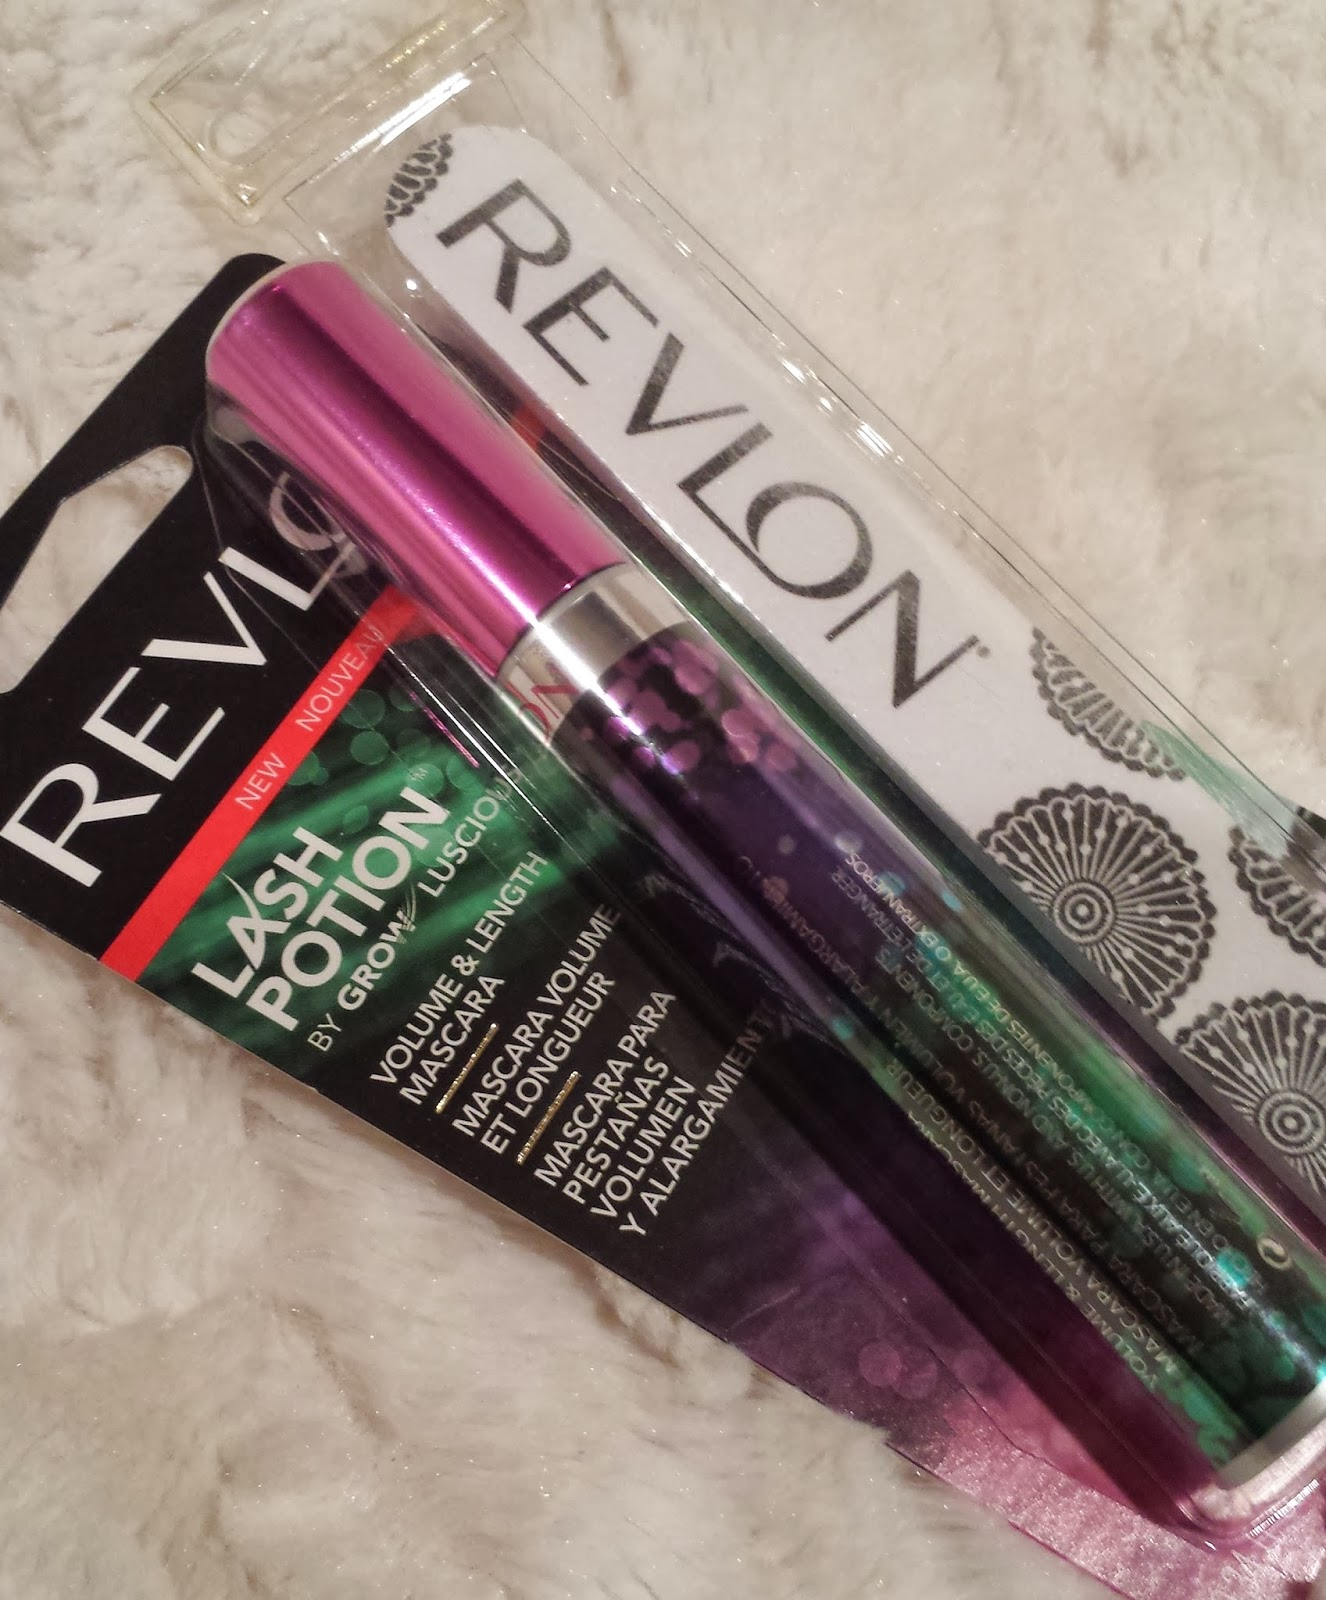 Revlon mascara and nail file